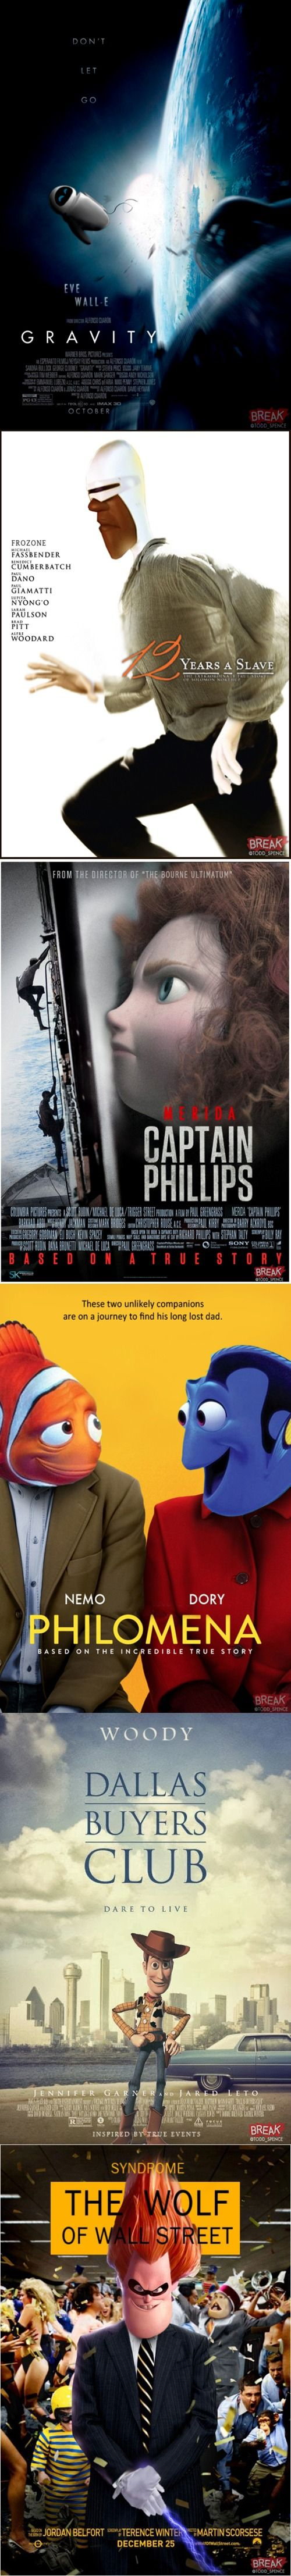 If Pixar characters were in Oscar Nominated Movies 2014